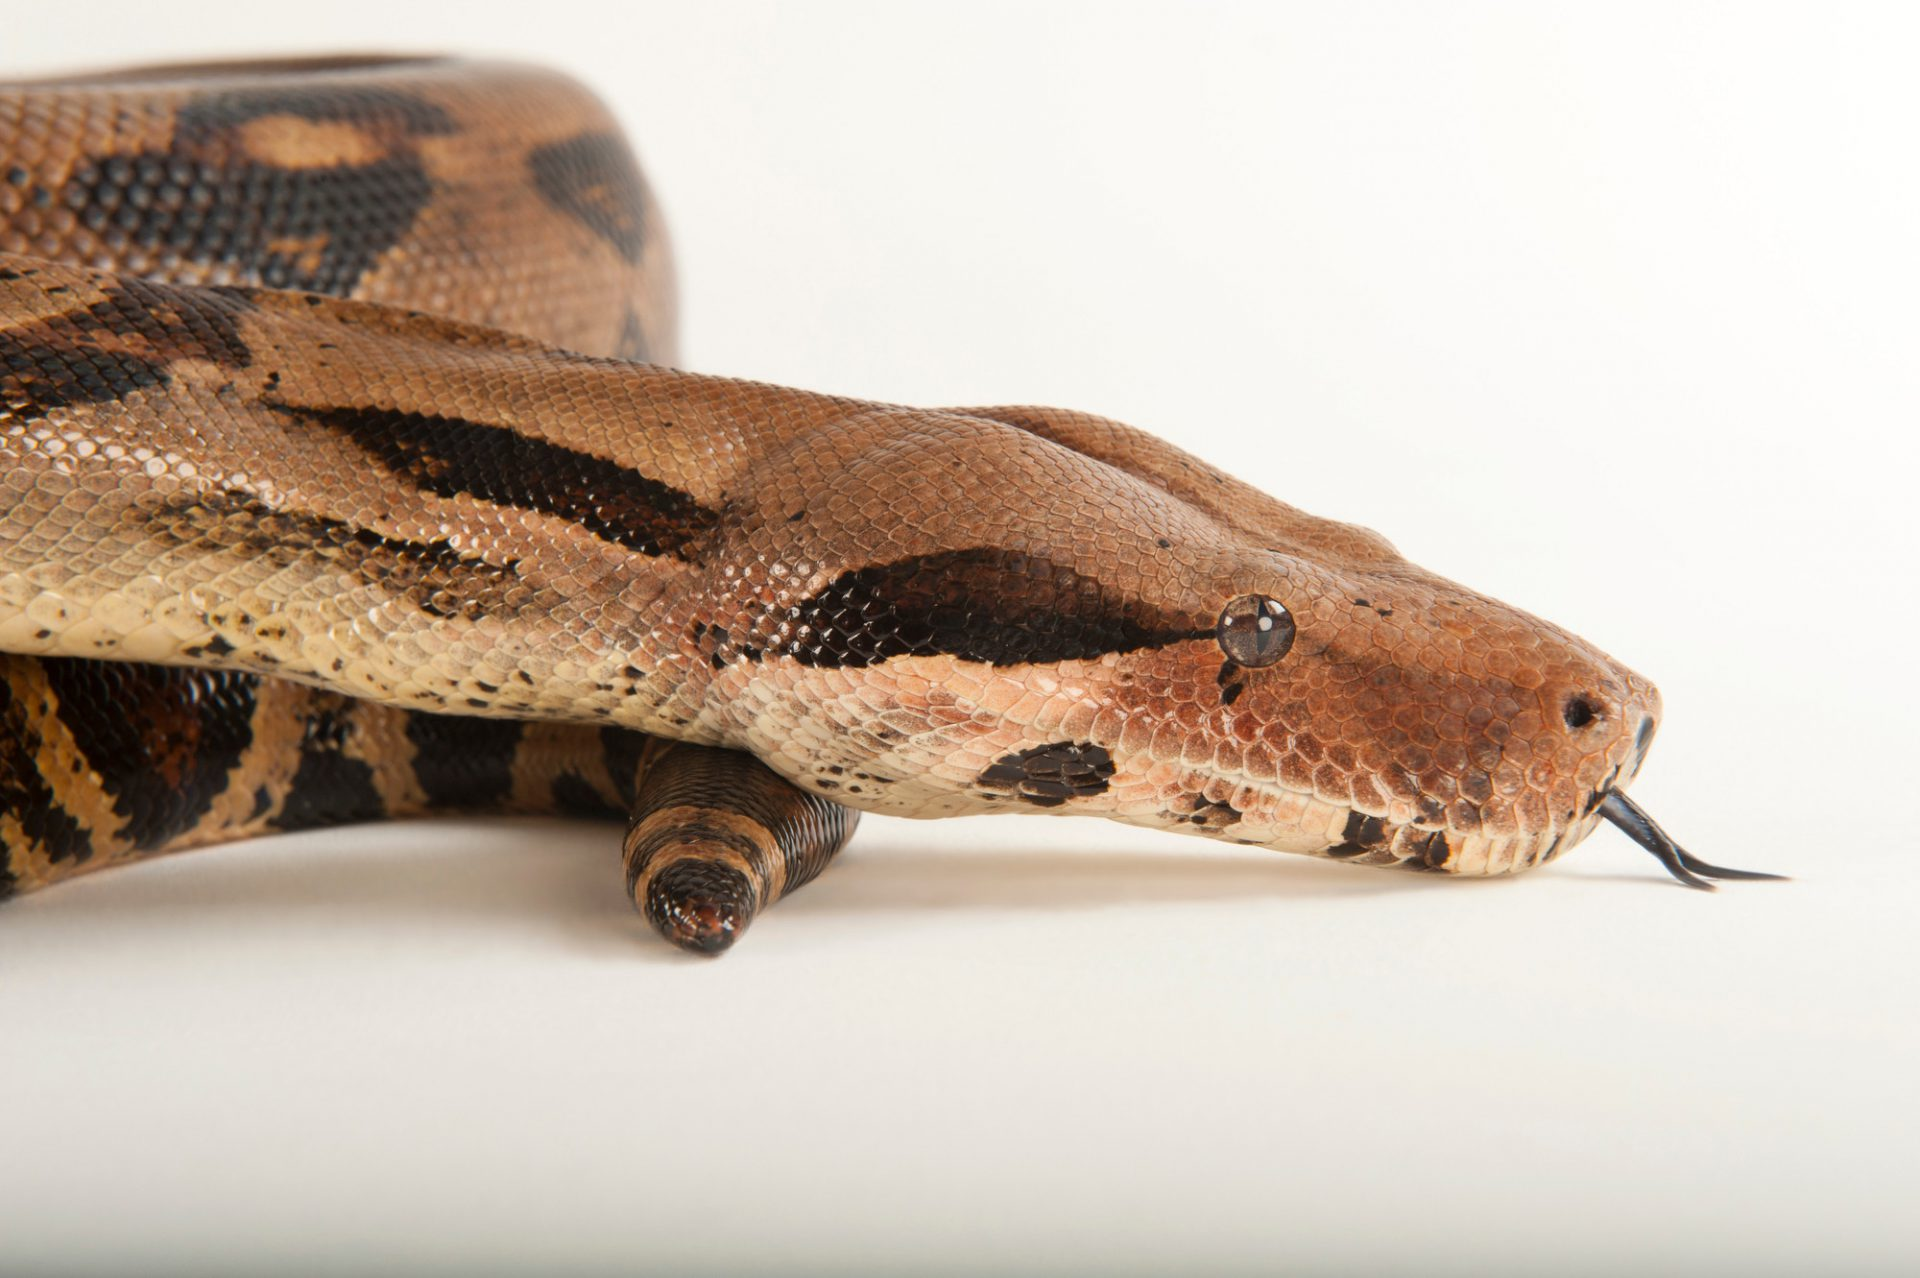 A Columbian boa constrictor (Boa constrictor imperator) at the Fort Worth Zoo.